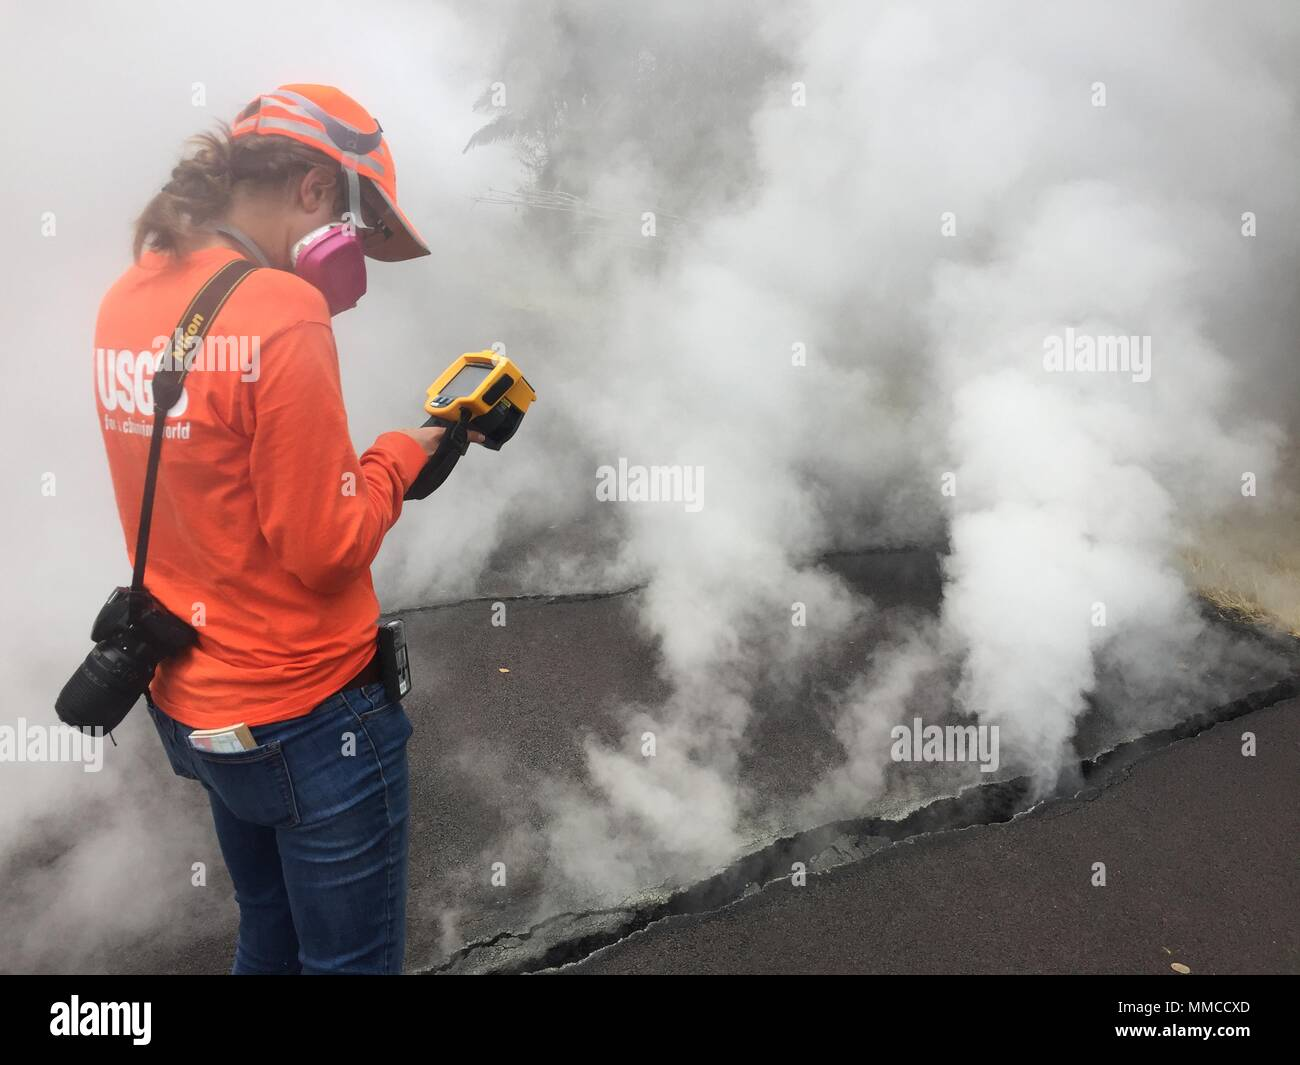 Leilani Estates, Hawaii. May 9, 2018. A U.S. Geologic Survey scientist records temperatures from ground cracks venting steam along Nohea Street caused by the Kilauea volcano eruption May 9, 2018 in Leilani Estates, Hawaii. The recent eruption continues destroying homes, forcing evacuations and spewing lava and poison gas on the Big Island of Hawaii. Credit: Planetpix/Alamy Live News - Stock Image